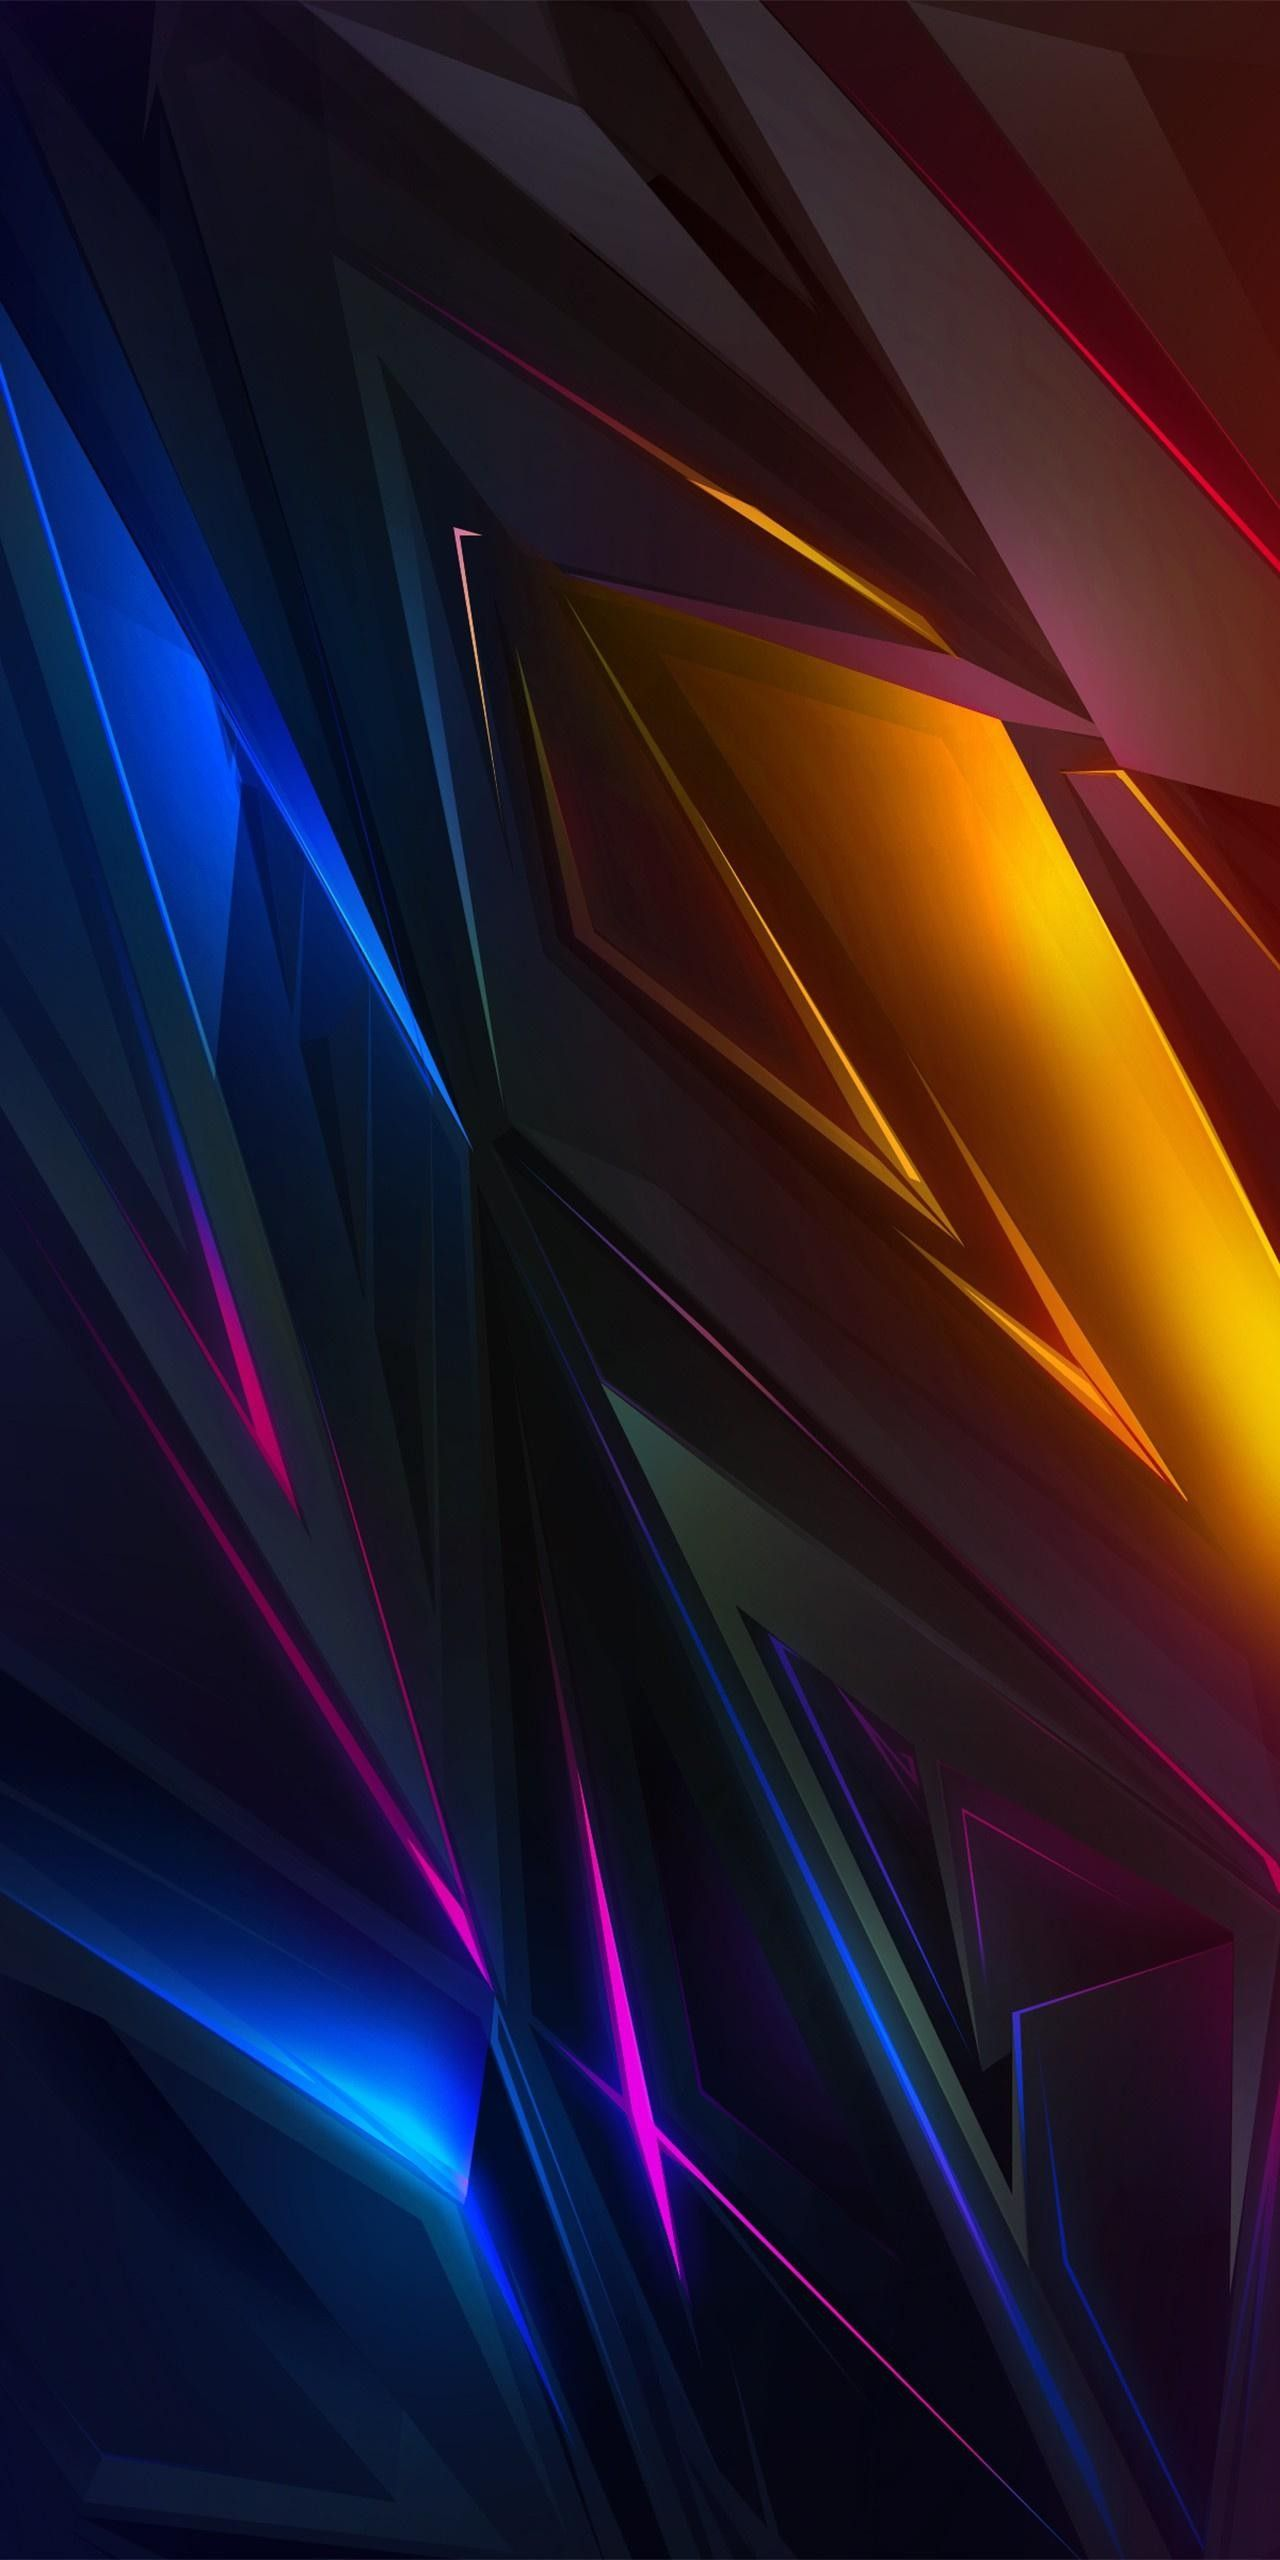 Epic Lines Background Colorful Abstract Iphone Wallpaper Smartphone Wallpaper Phone Wallpaper Design